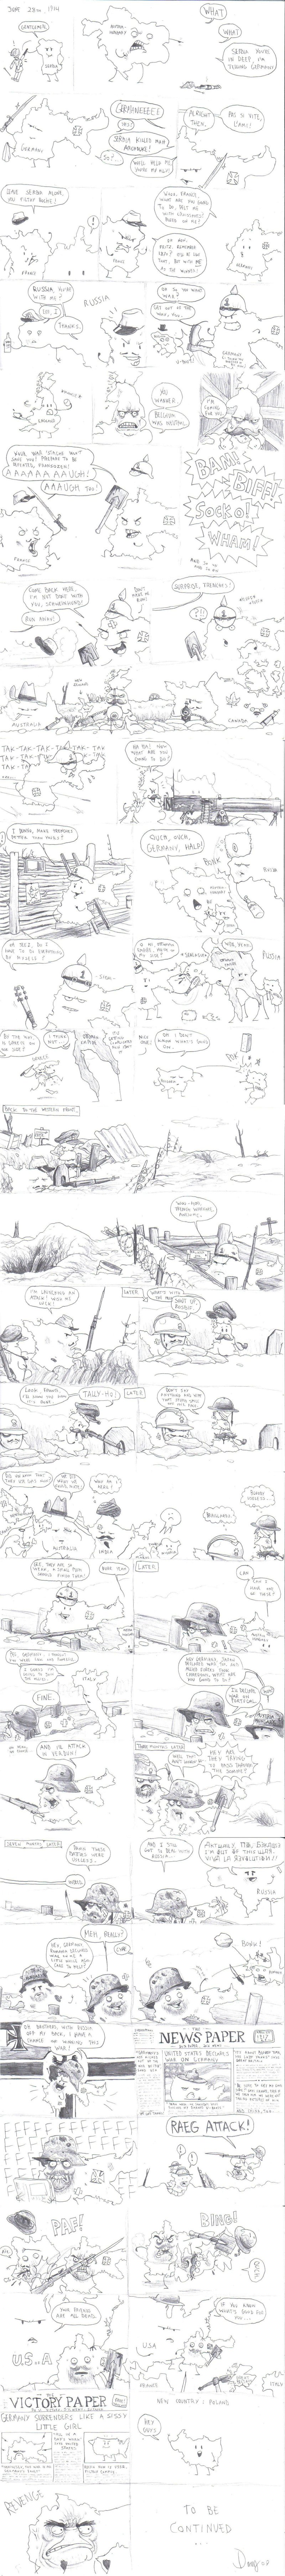 World War One Simple Version - Click To View Image